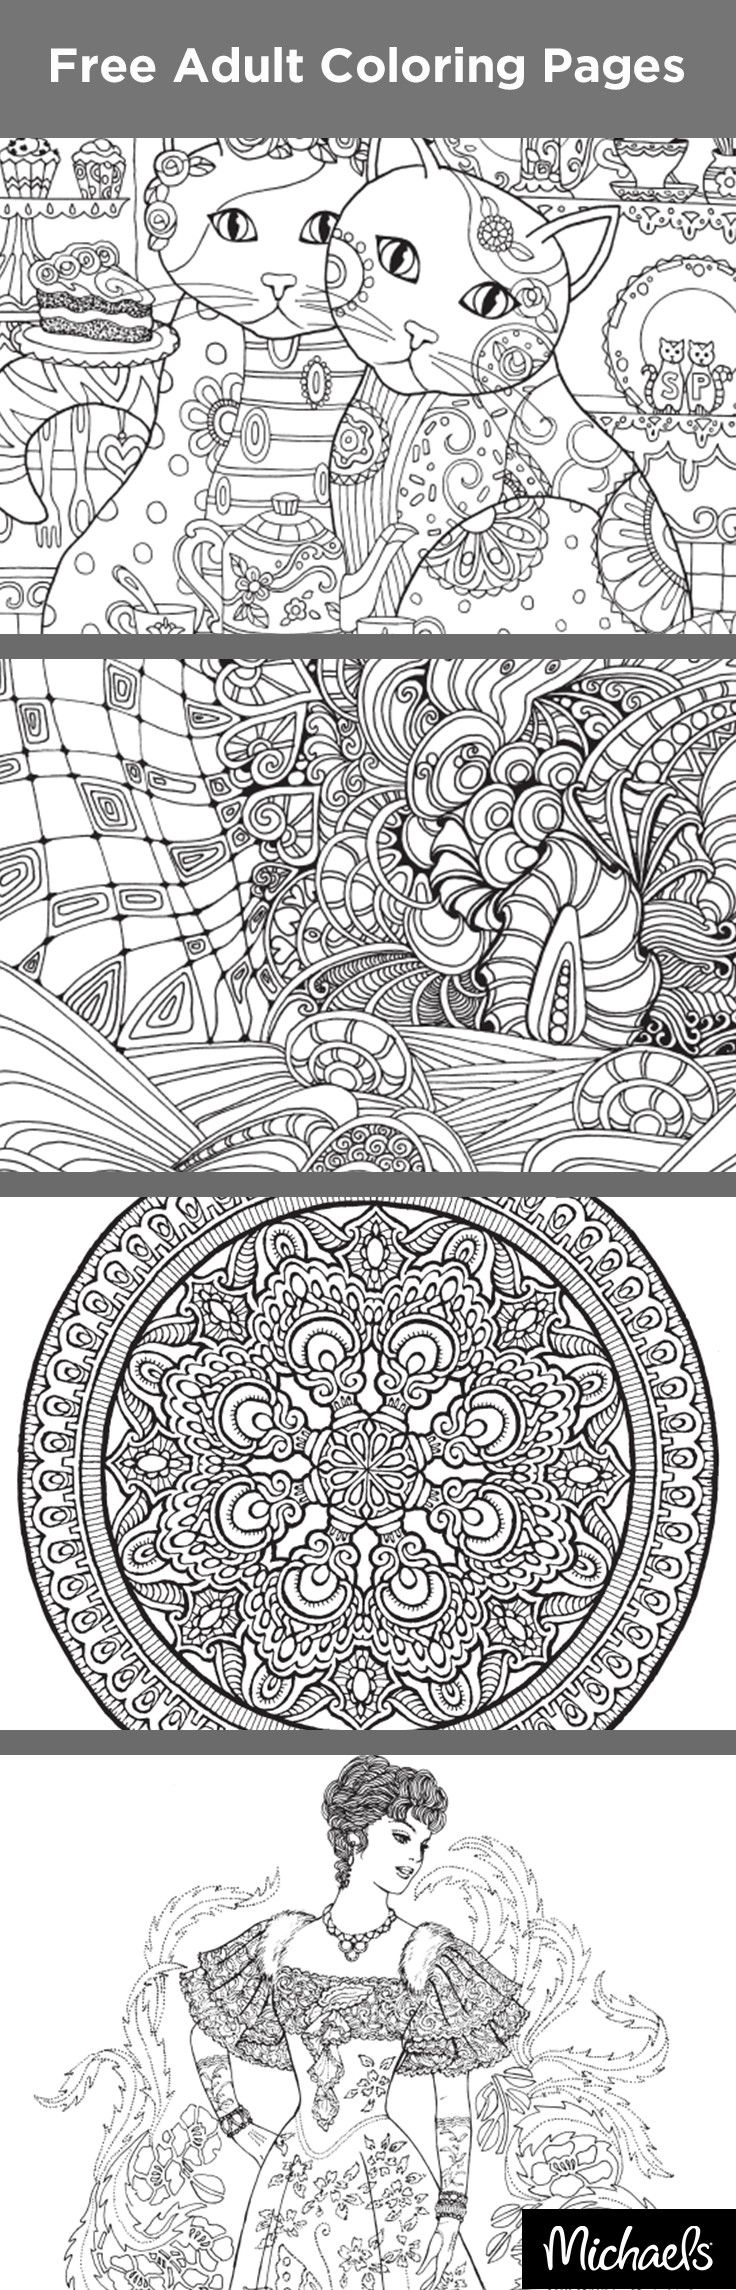 160 best coloring images on pinterest coloring books drawings